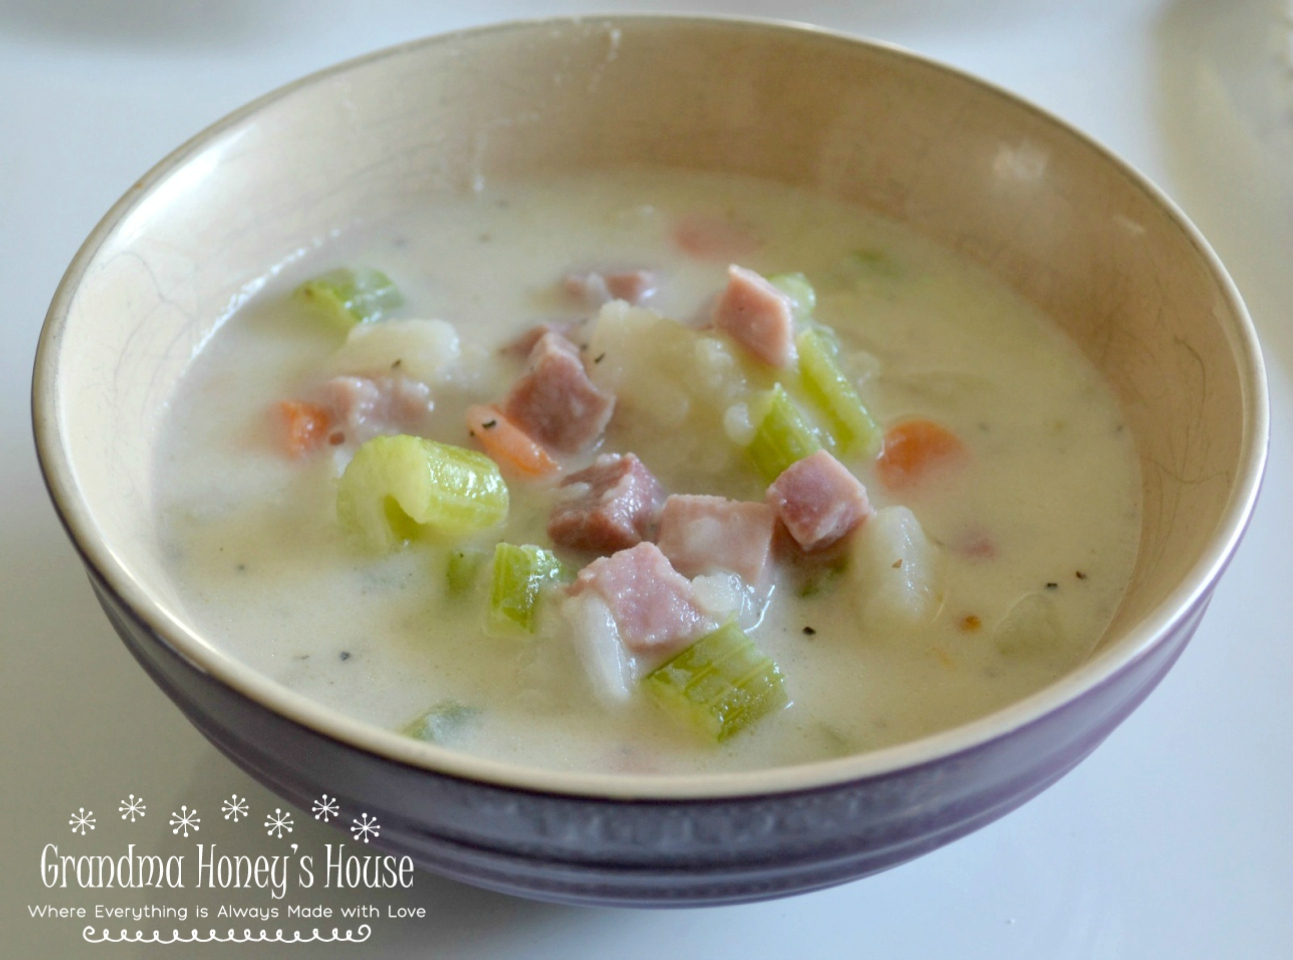 Potato soup recipes that are family favorites. Loaded baked potato or old fashioned potato & ham.